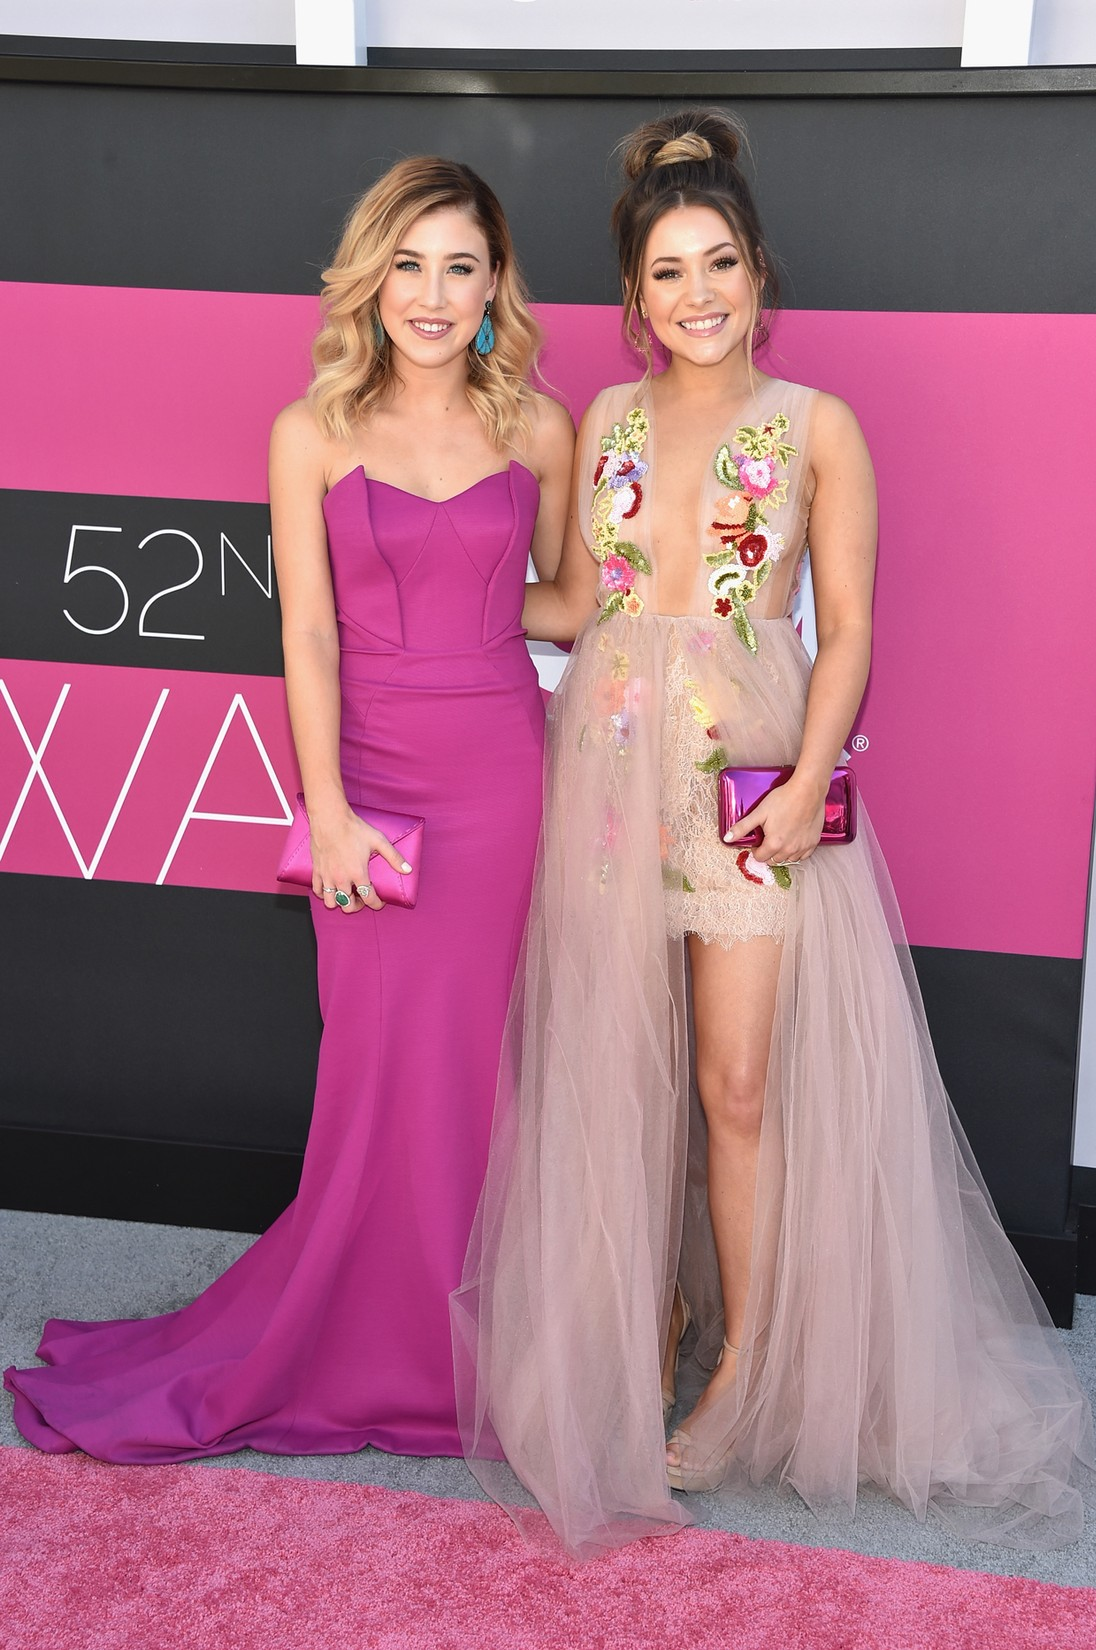 Maddie Marlow (L) and Taylor 'Tae' Dye of music group Maddie & Tae attend the 52nd Academy Of Country Music Awards at Toshiba Plaza on April 2, 2017 in Las Vegas.